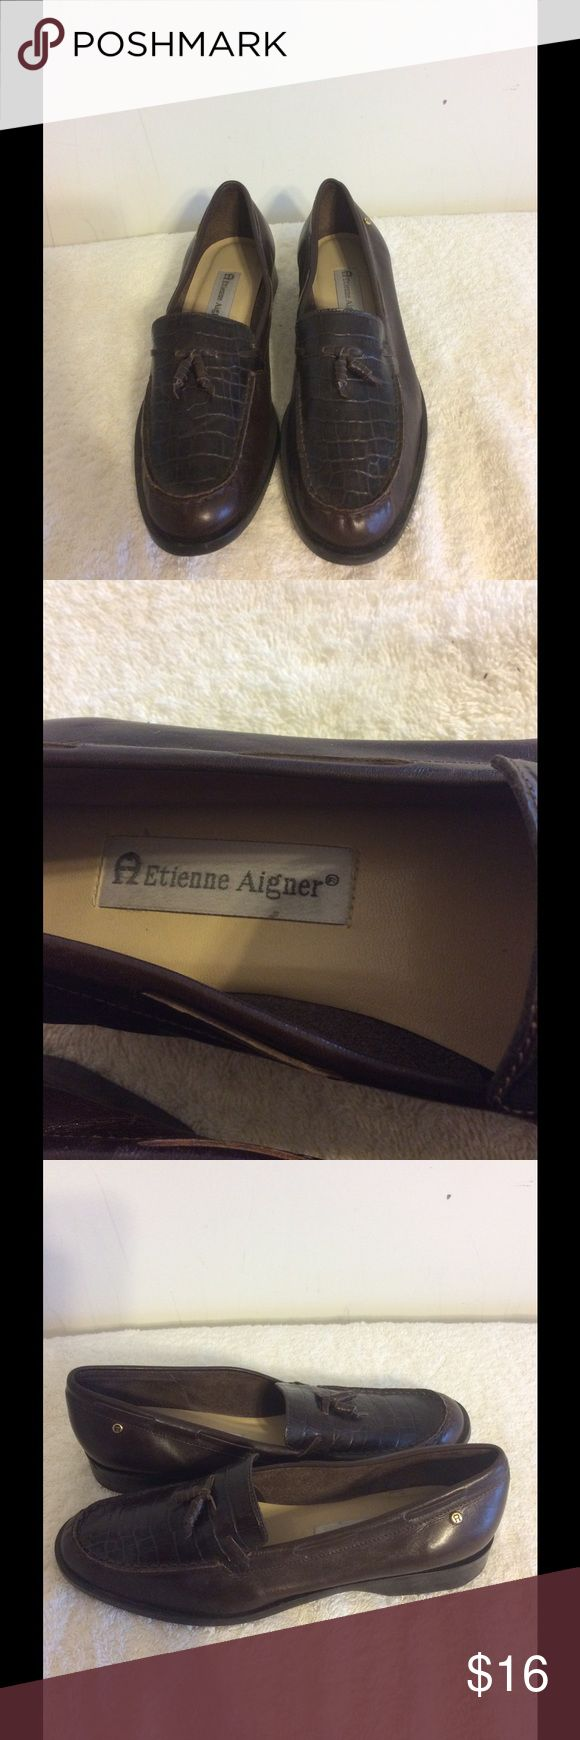 Etienne Aigner Leather Shoes Etienne Aigner Leather Shoes with tassel on front and aligator look on front with leather rope tie running around body of shoe to tassel Etienne Aigner Shoes Flats & Loafers